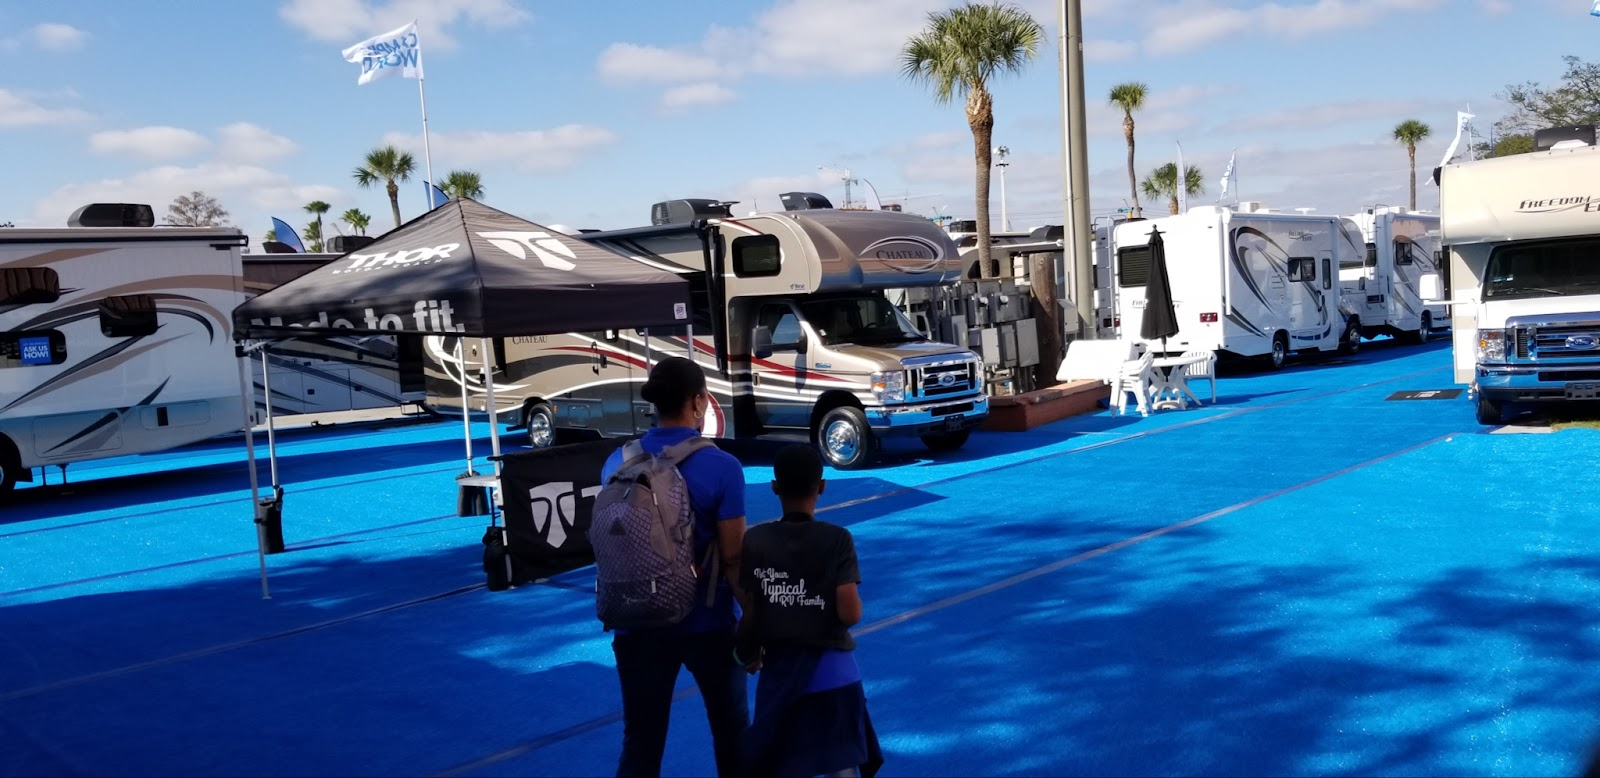 Mother and son explore an outdoor RV show